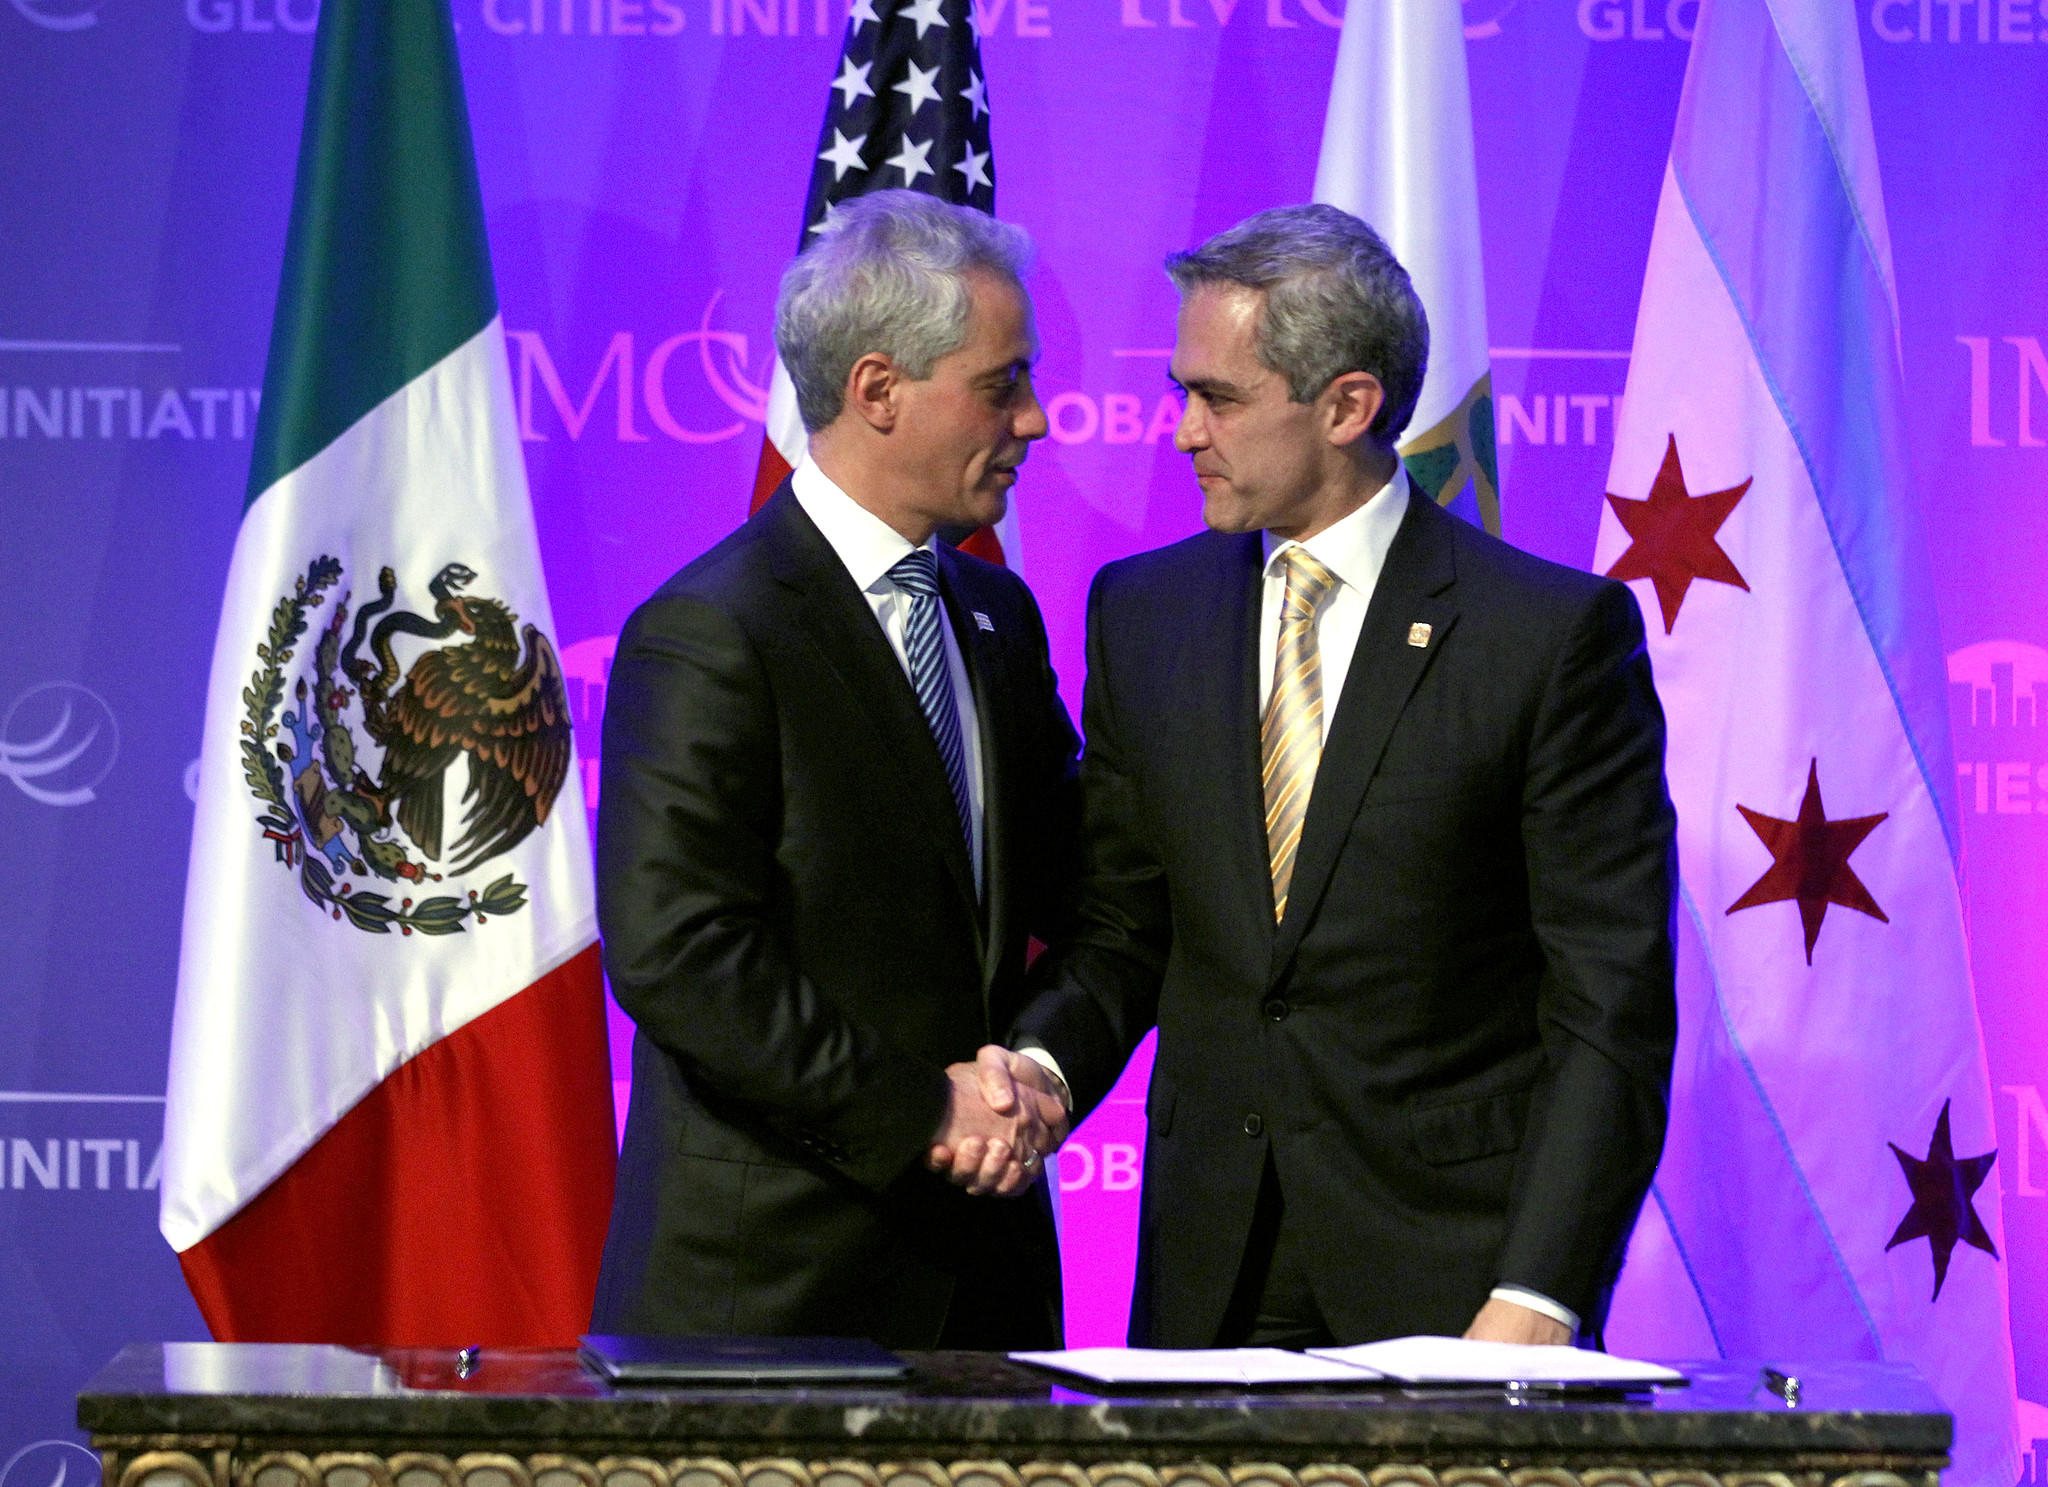 Chicago Mayor Rahm Emanuel, left, shakes hands with Mexico City Mayor Miguel Angel Mancera after signing the 'Forging A Global Cities Economic Partnership' in Mexico City.